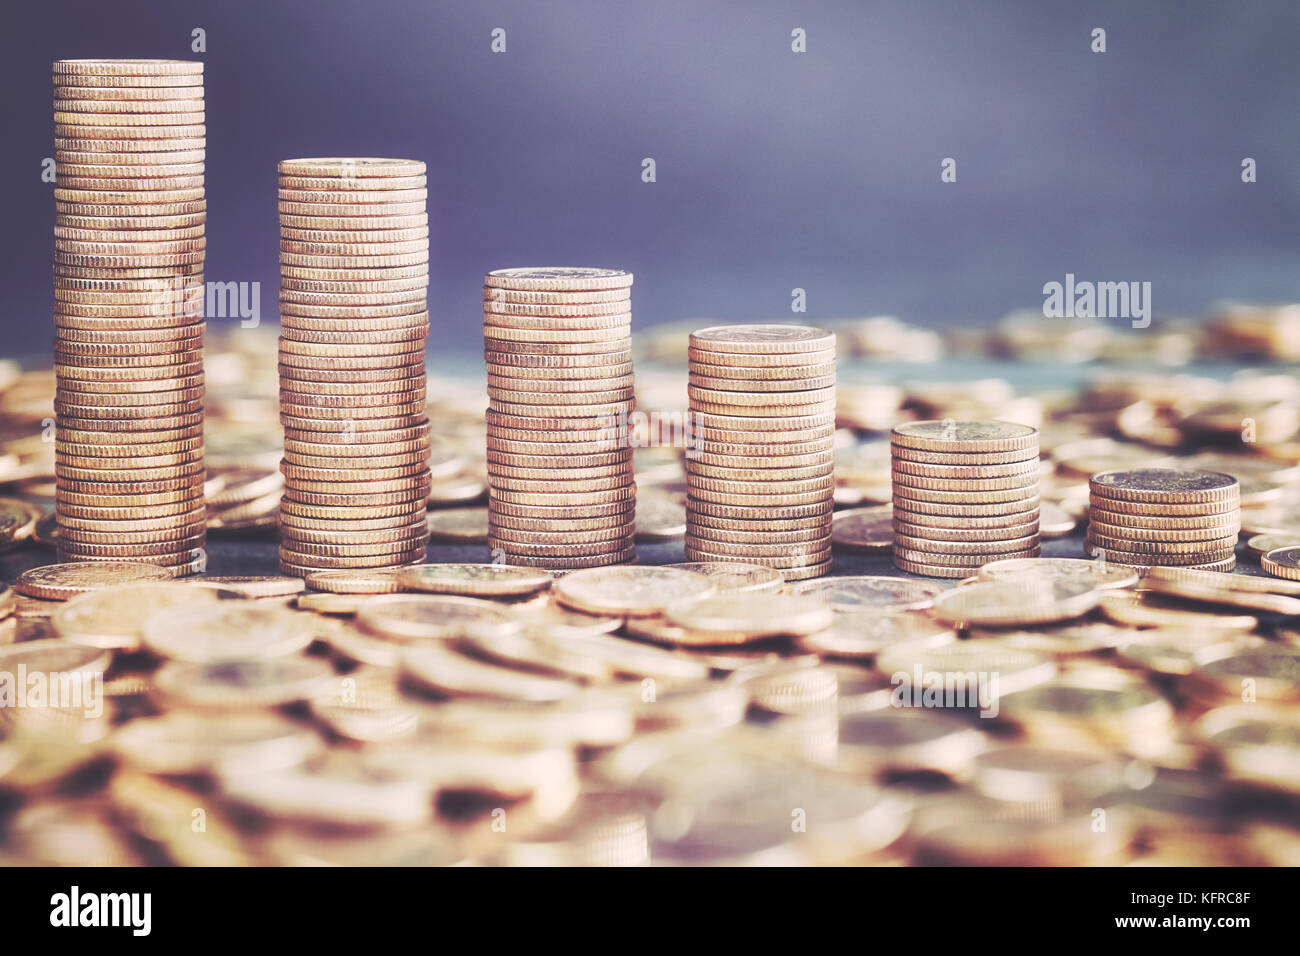 Stacks of golden coins, color toning applied. - Stock Image